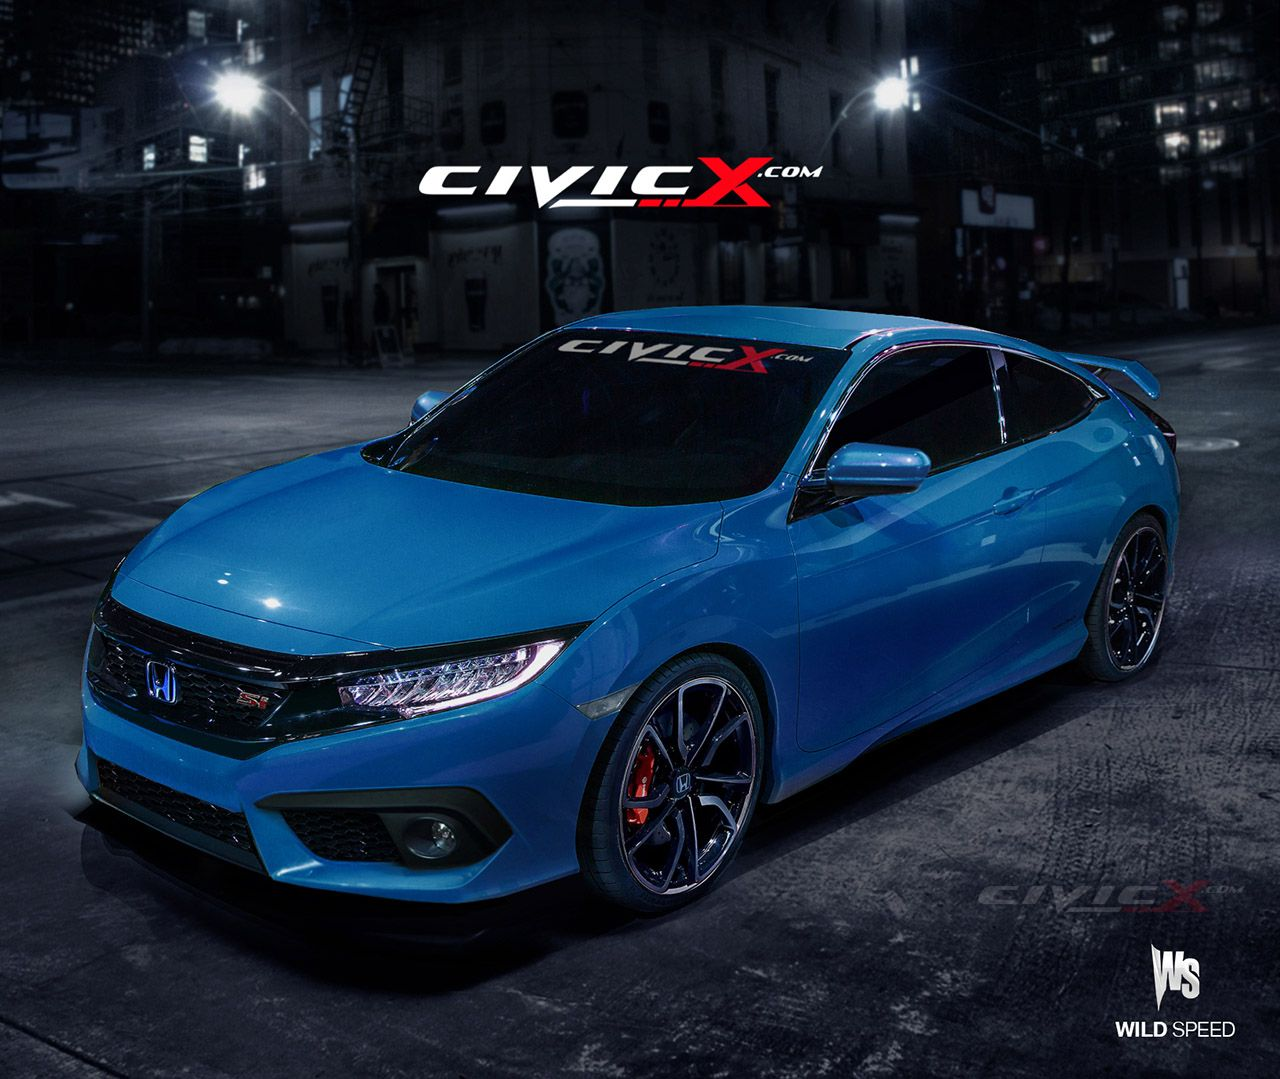 Our 2016 Honda Civic Si Coupe preview render images